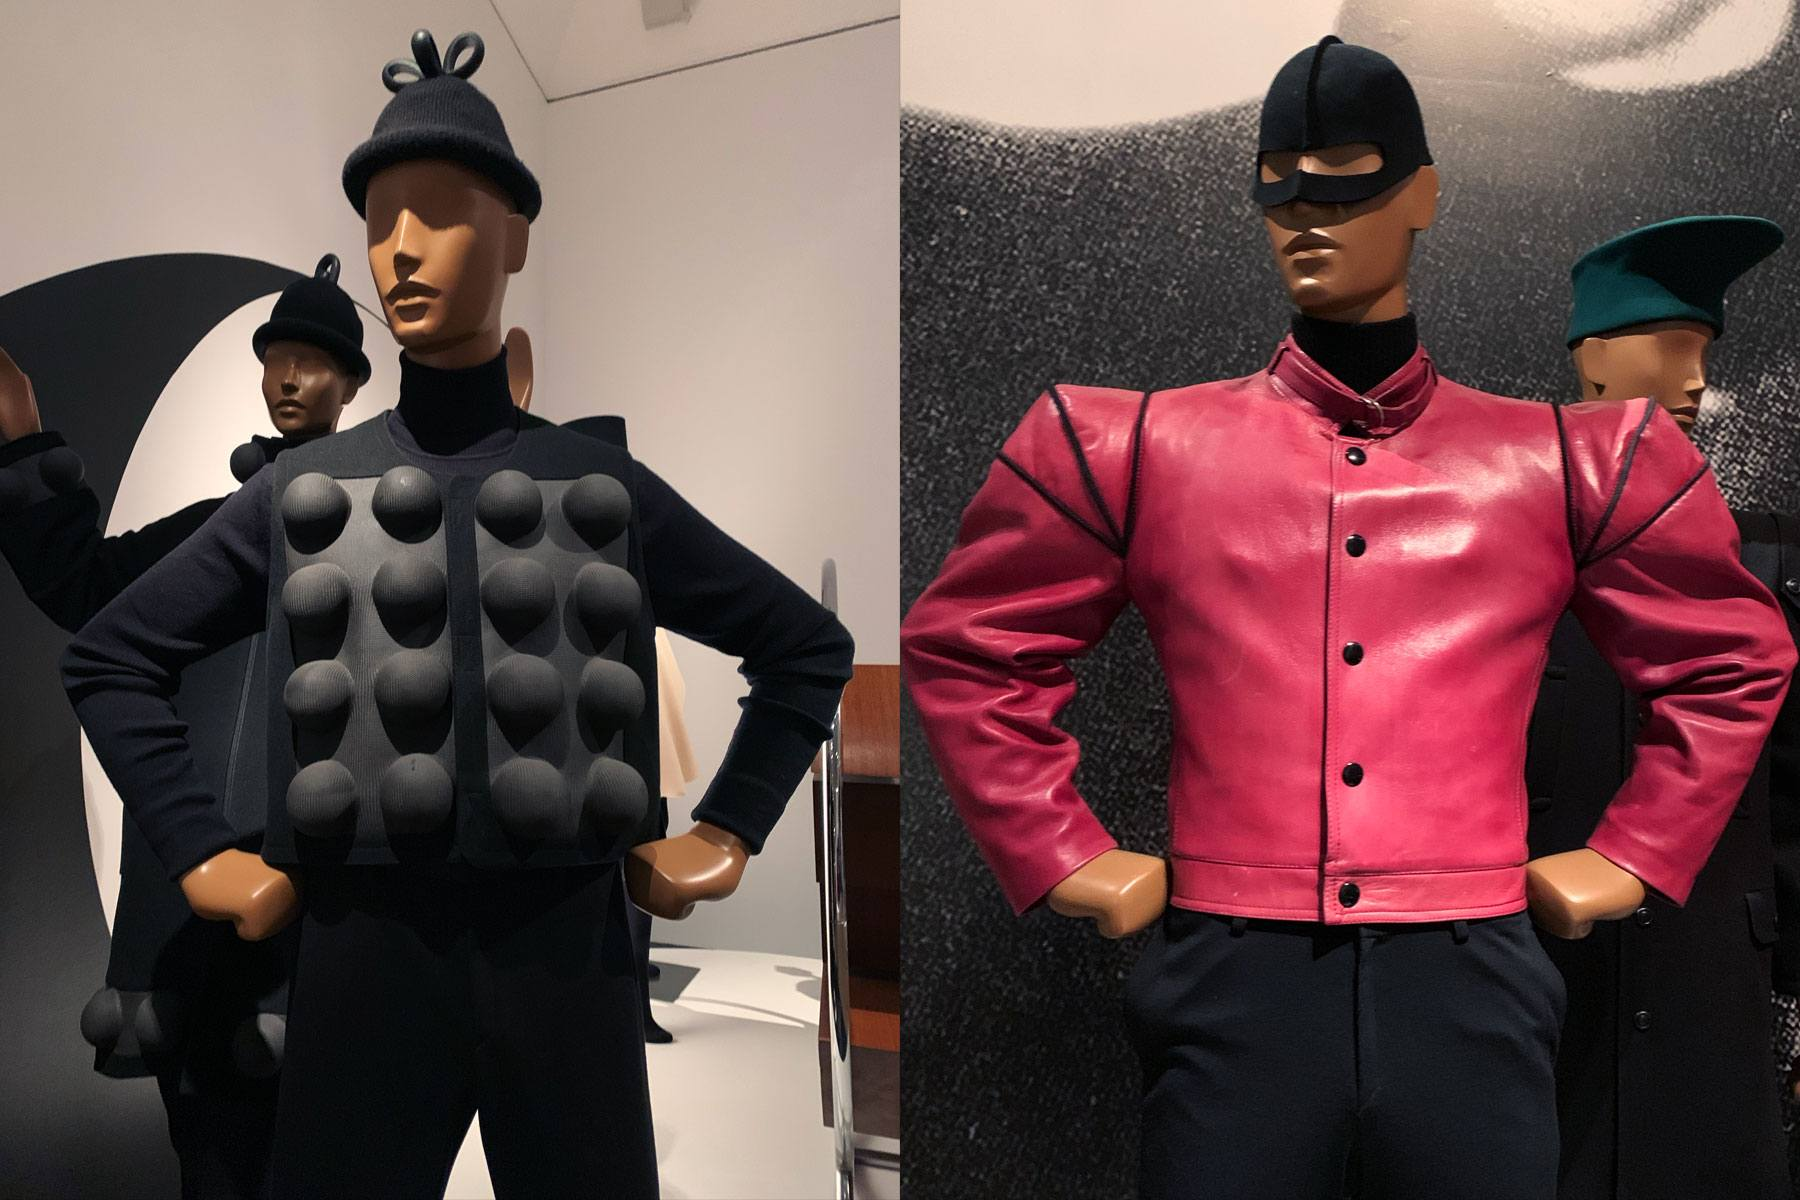 Vintage Pierre Cardin menswear at the Brooklyn Museum. Photographed by Alexander Thompson for Ponyboy magazine.